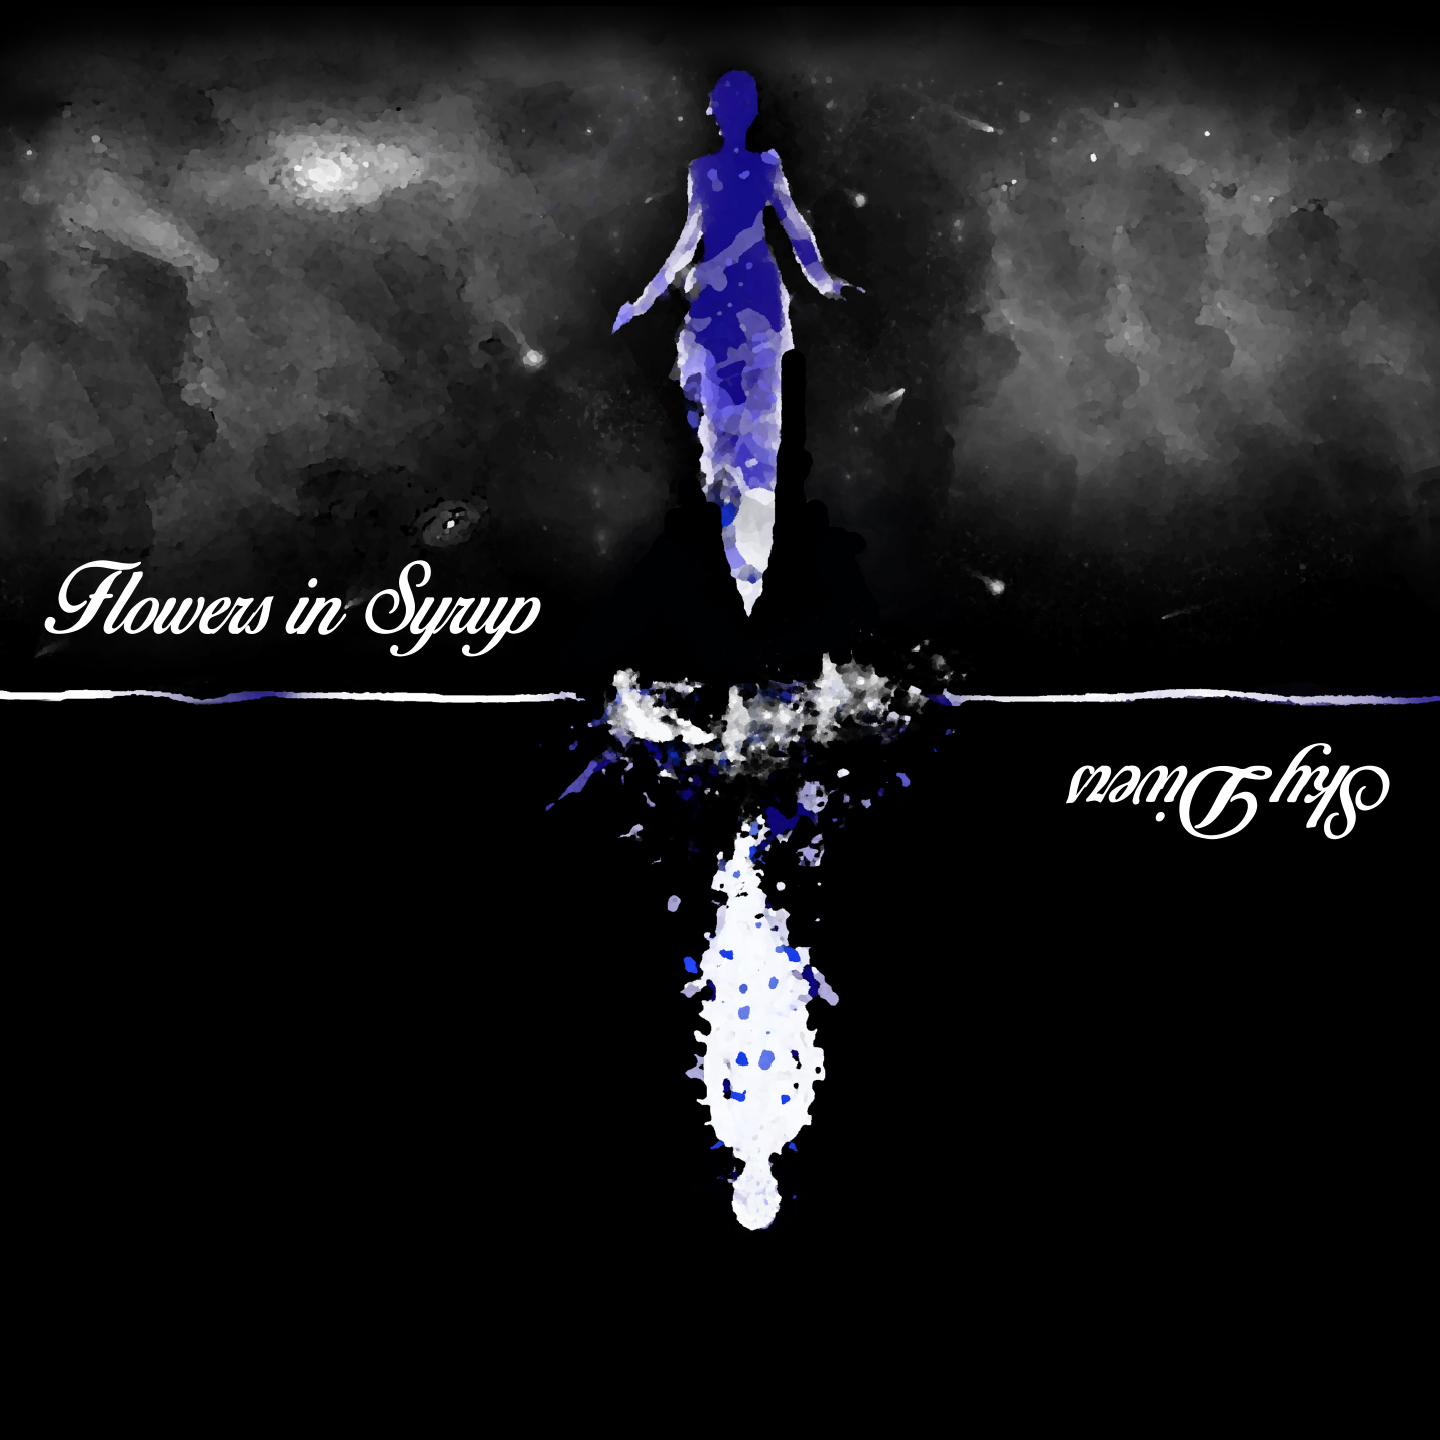 Flowers in Syrup Coverartwork SkyDivers